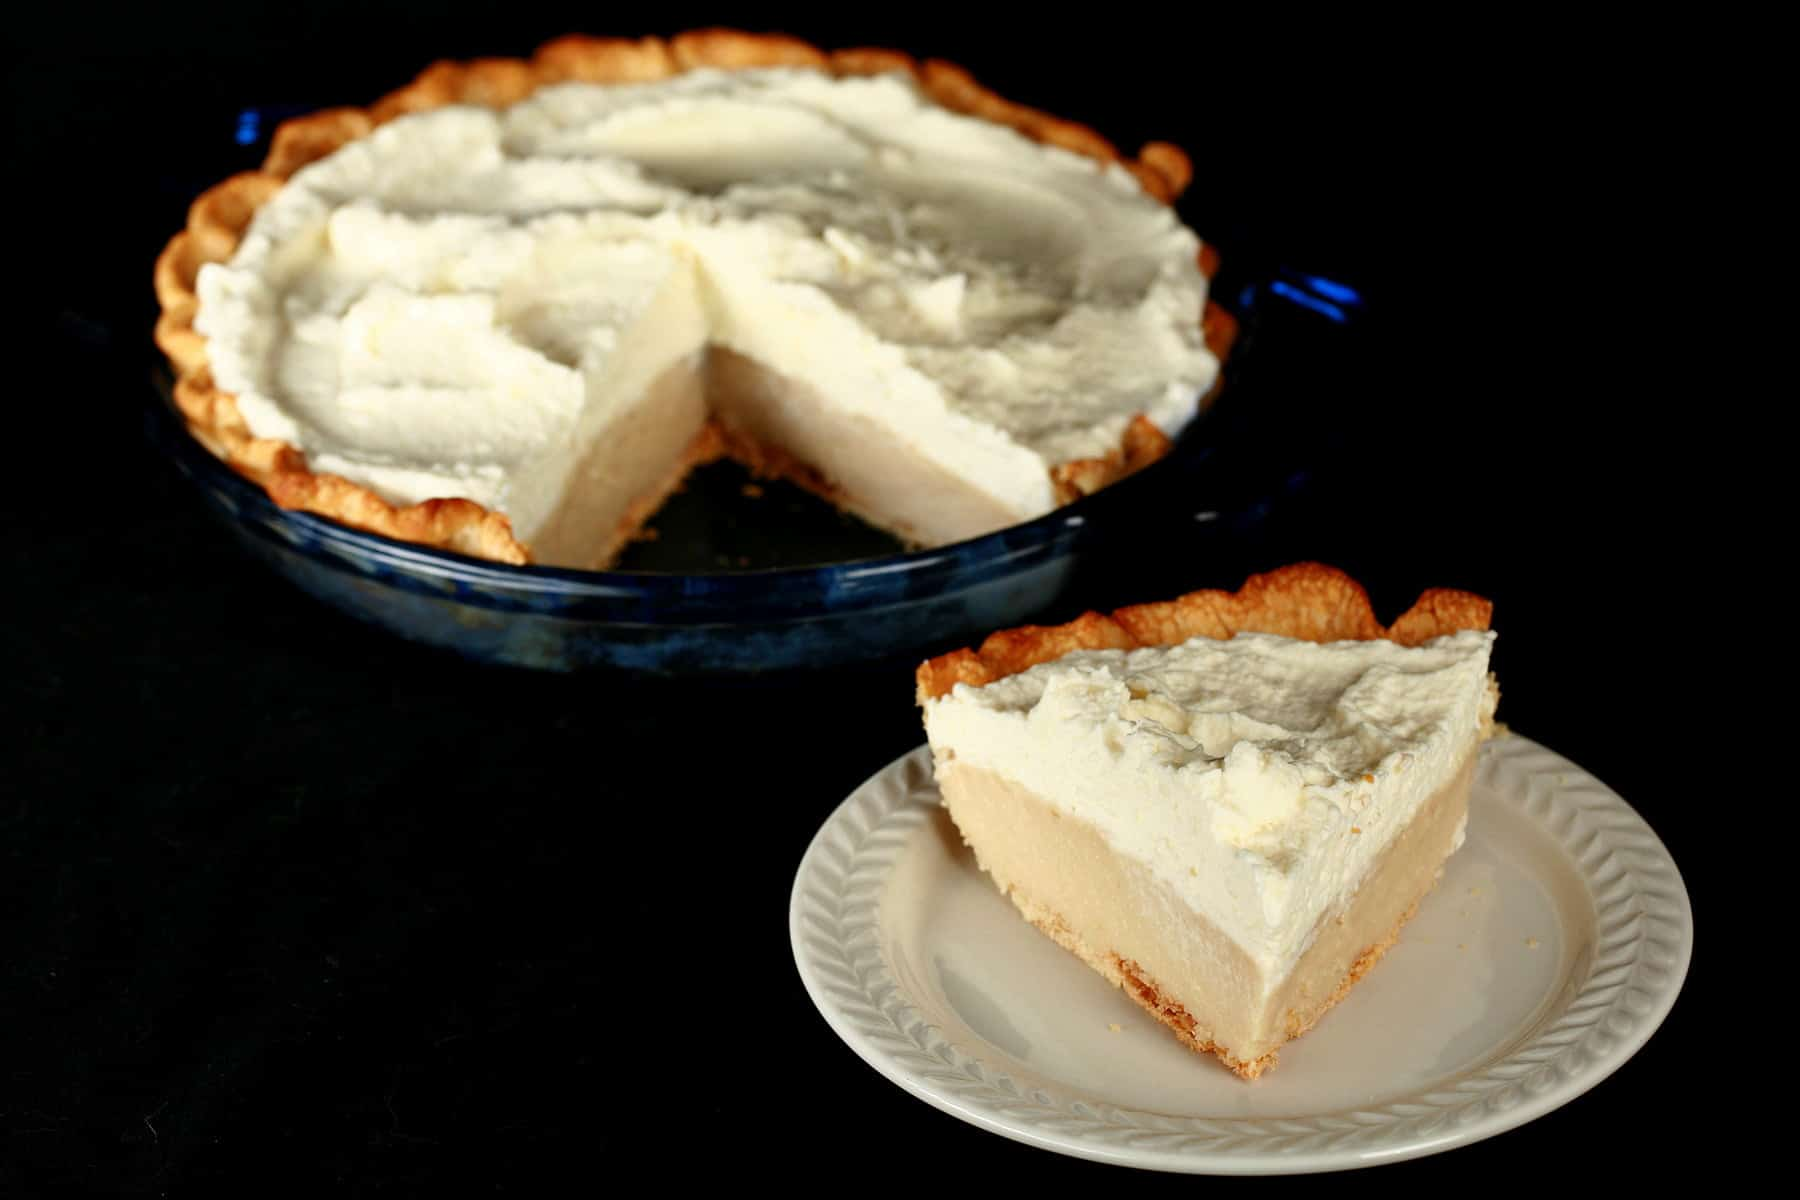 A Gluten-Free Earl Grey Cream Pie - A greige custard pie, topped with whipped cream.